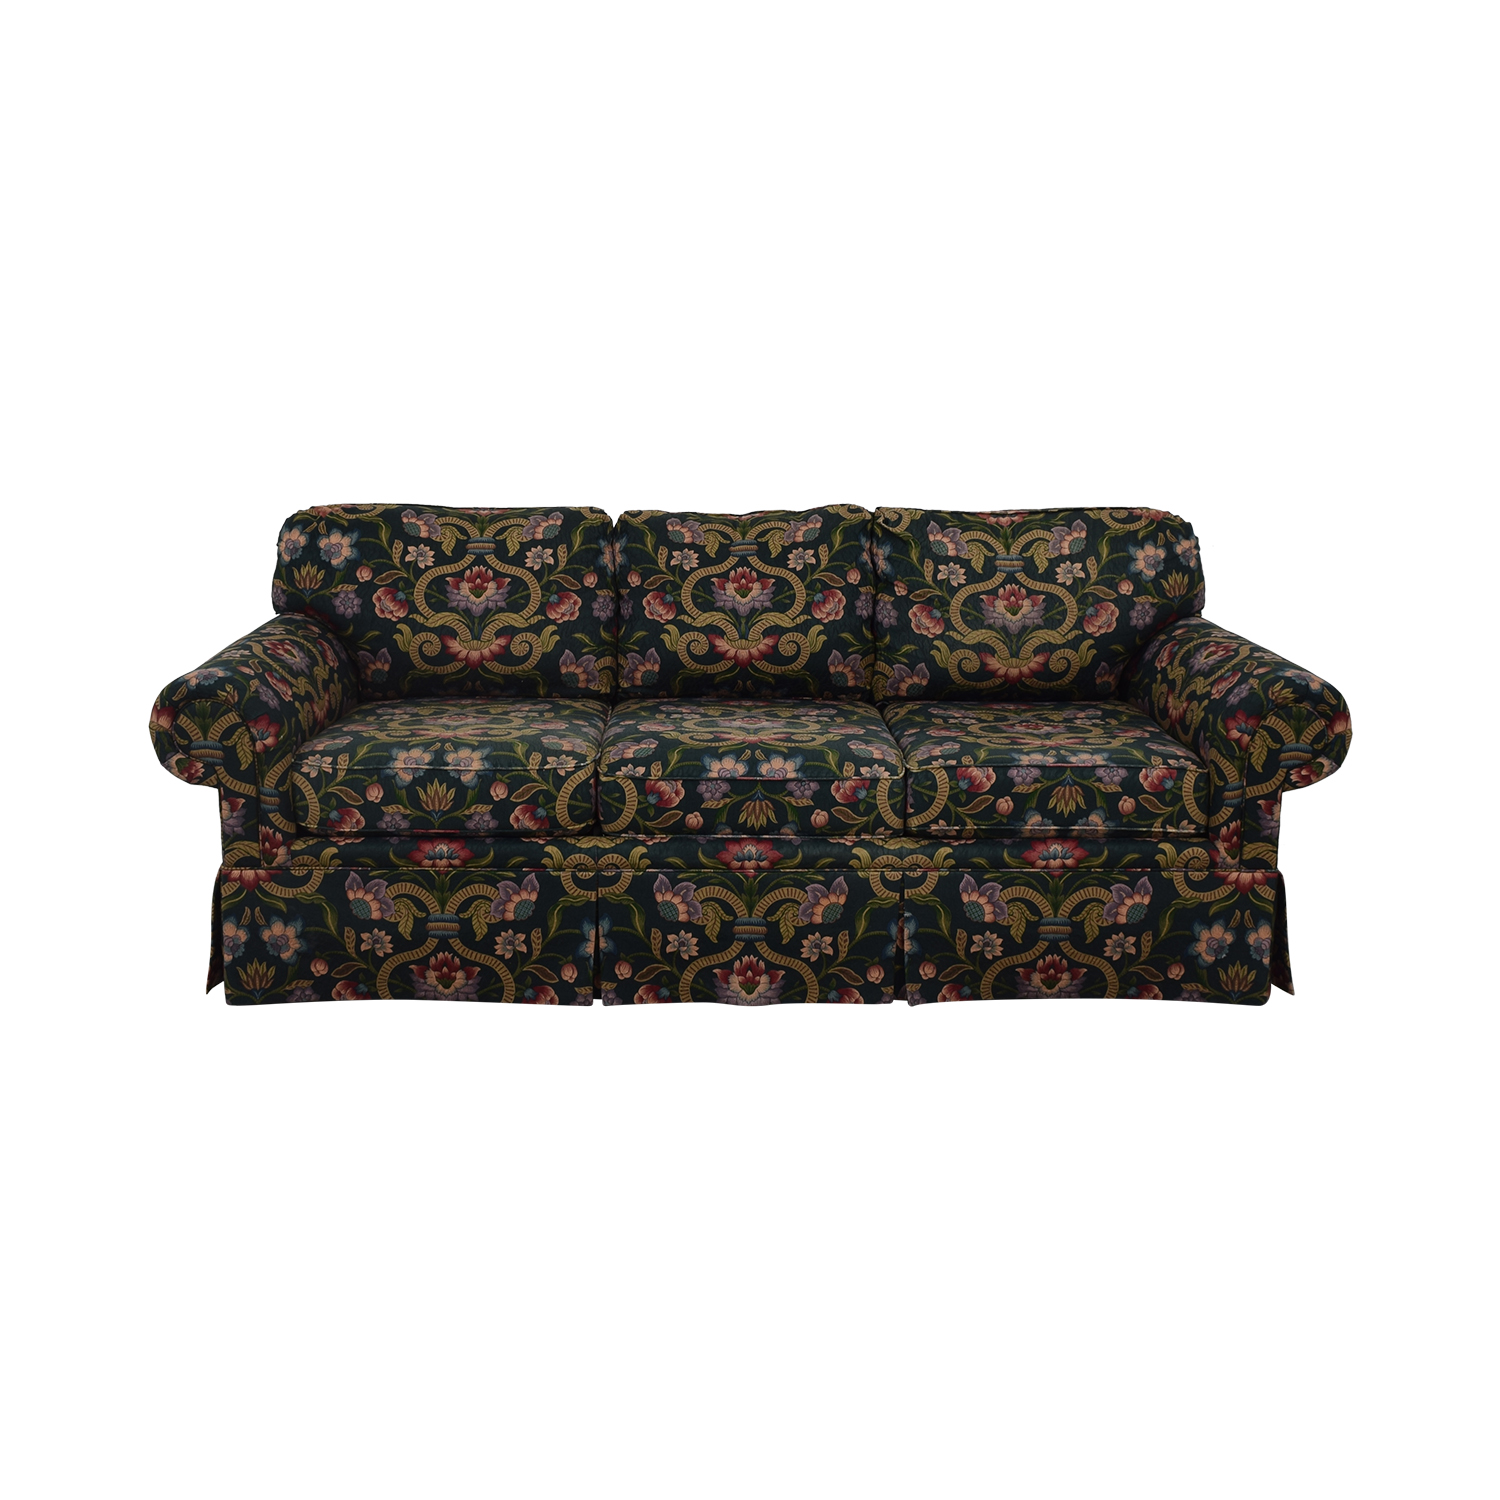 Vanguard Furniture Vanguard Furniture Rolled Arm Sofa ct